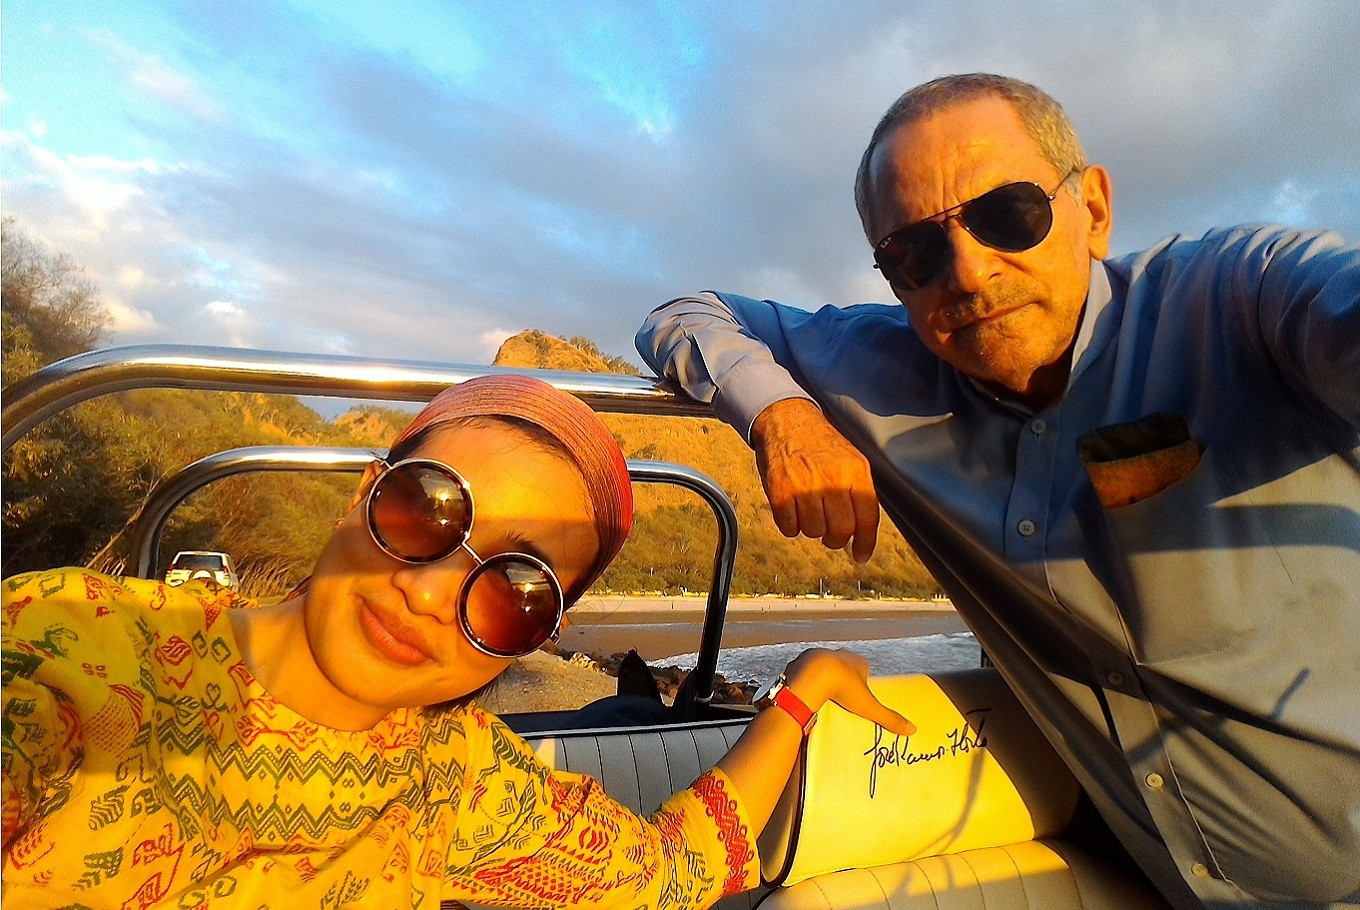 On the road with José Ramos-Horta